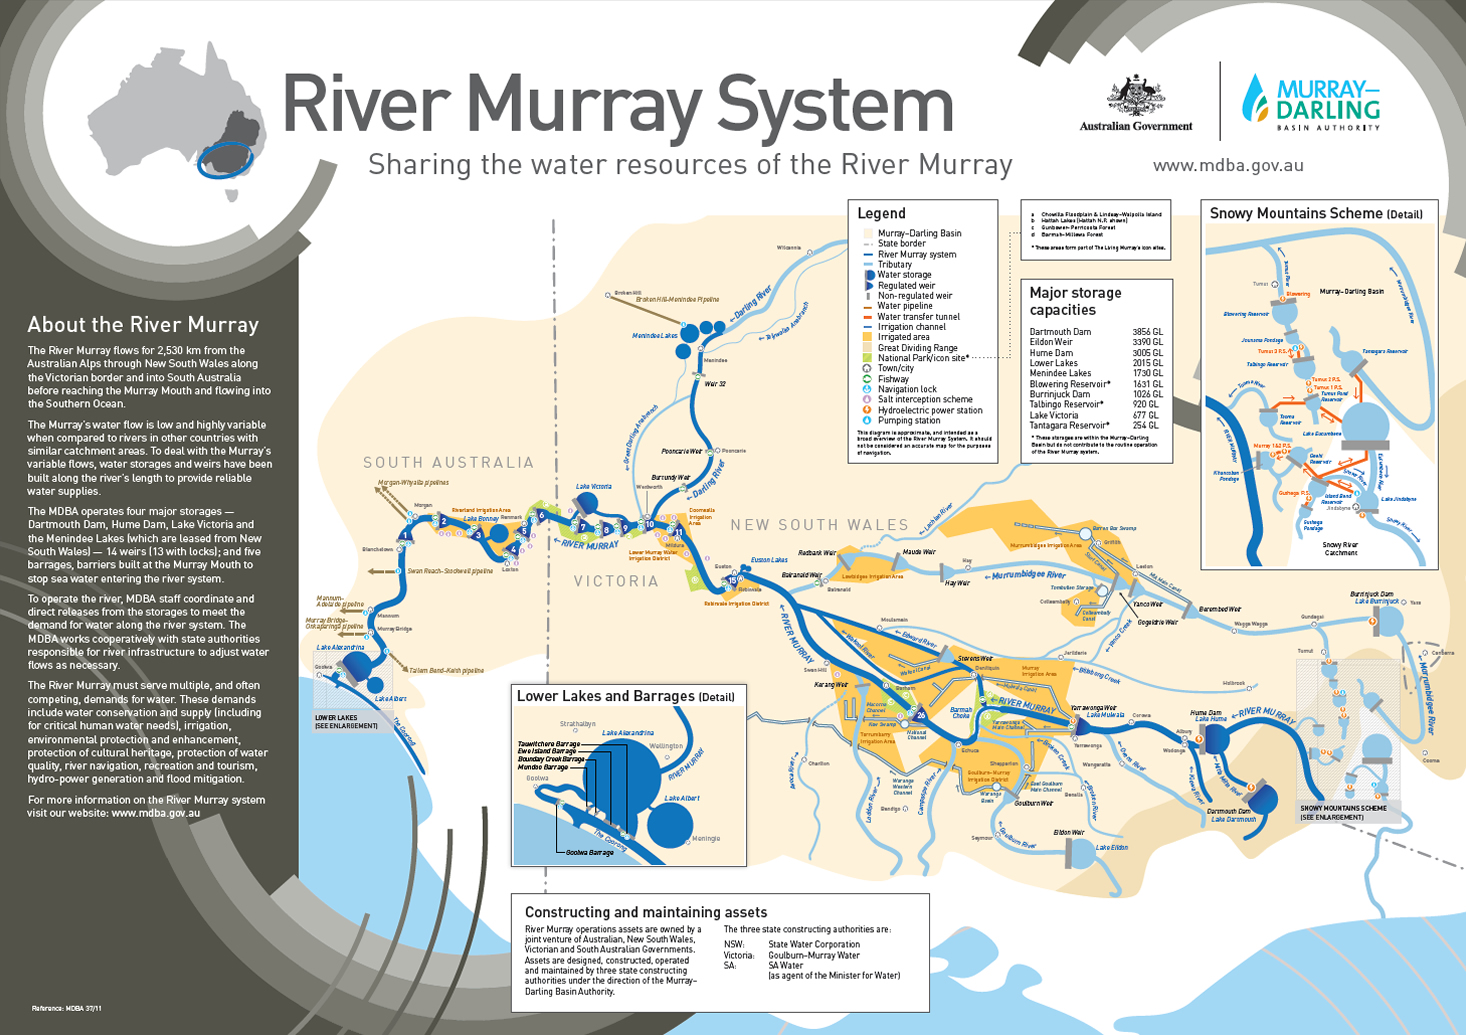 The River Murray system